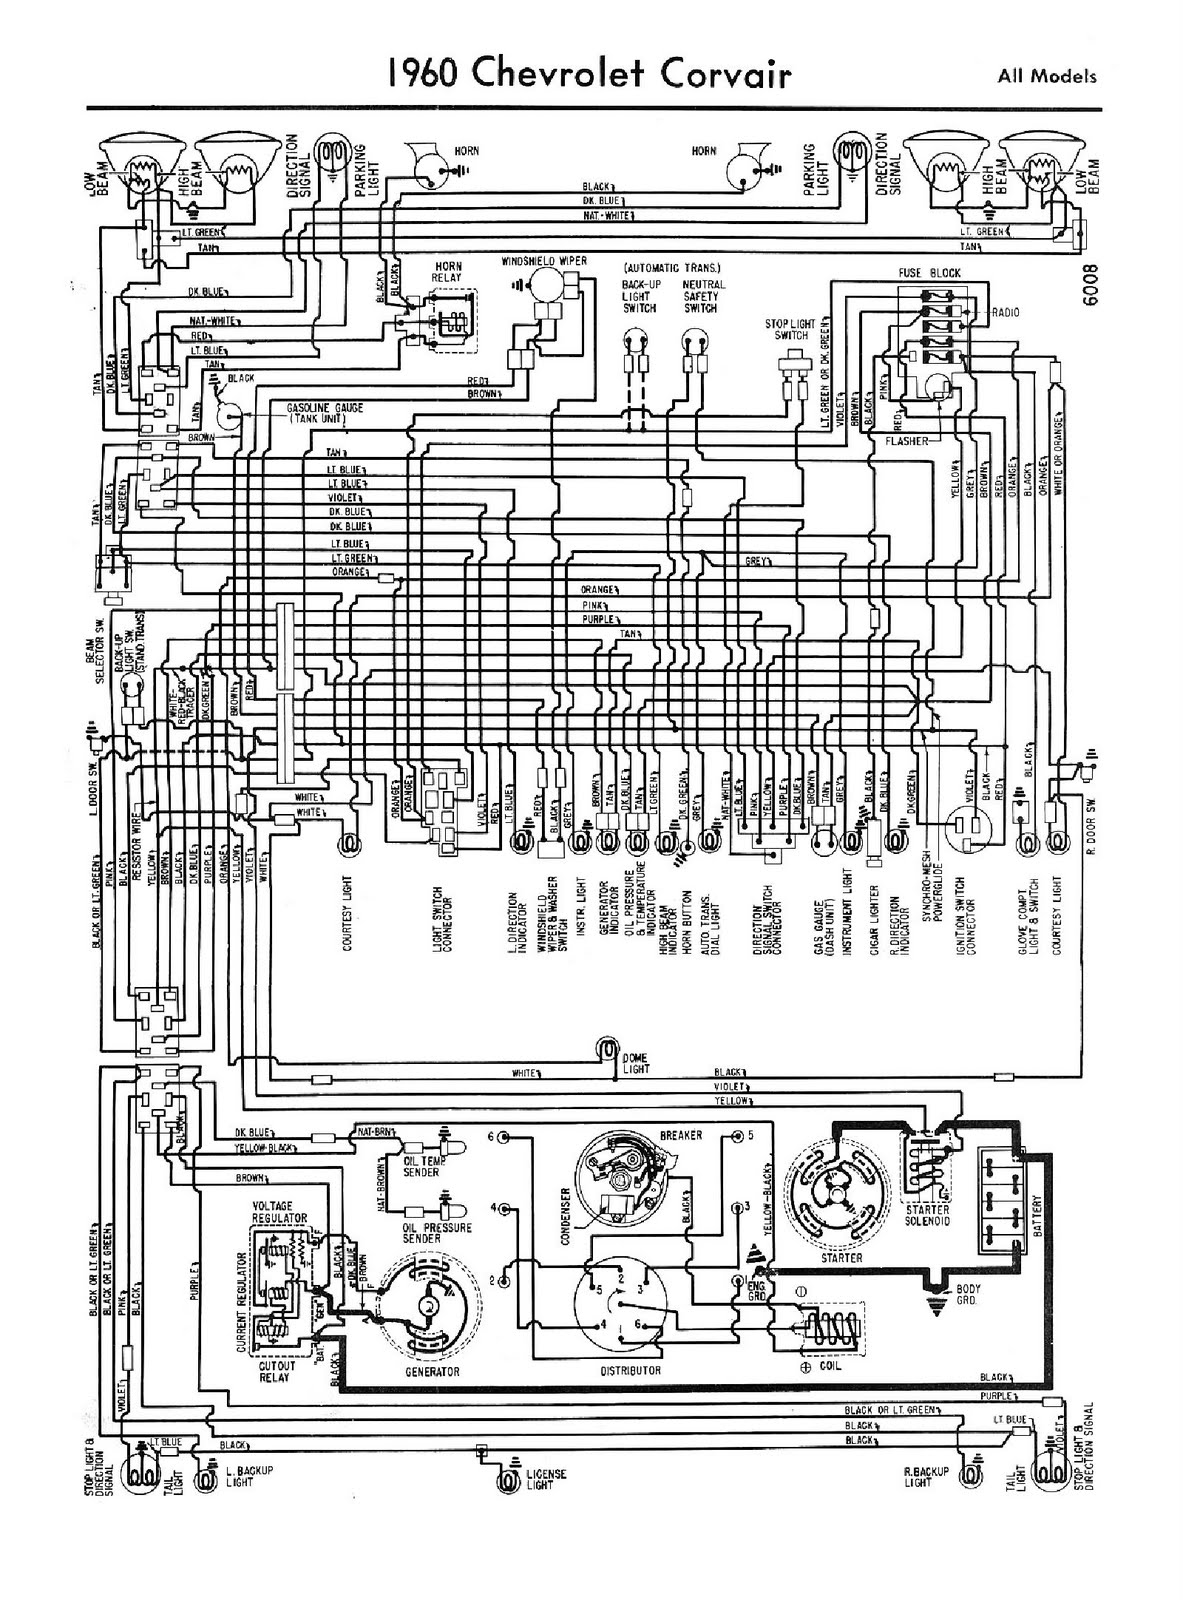 small resolution of free auto wiring diagram 1960 chevrolet corvair wiring 1960 chevy impala wiring diagram 1960 chevy impala